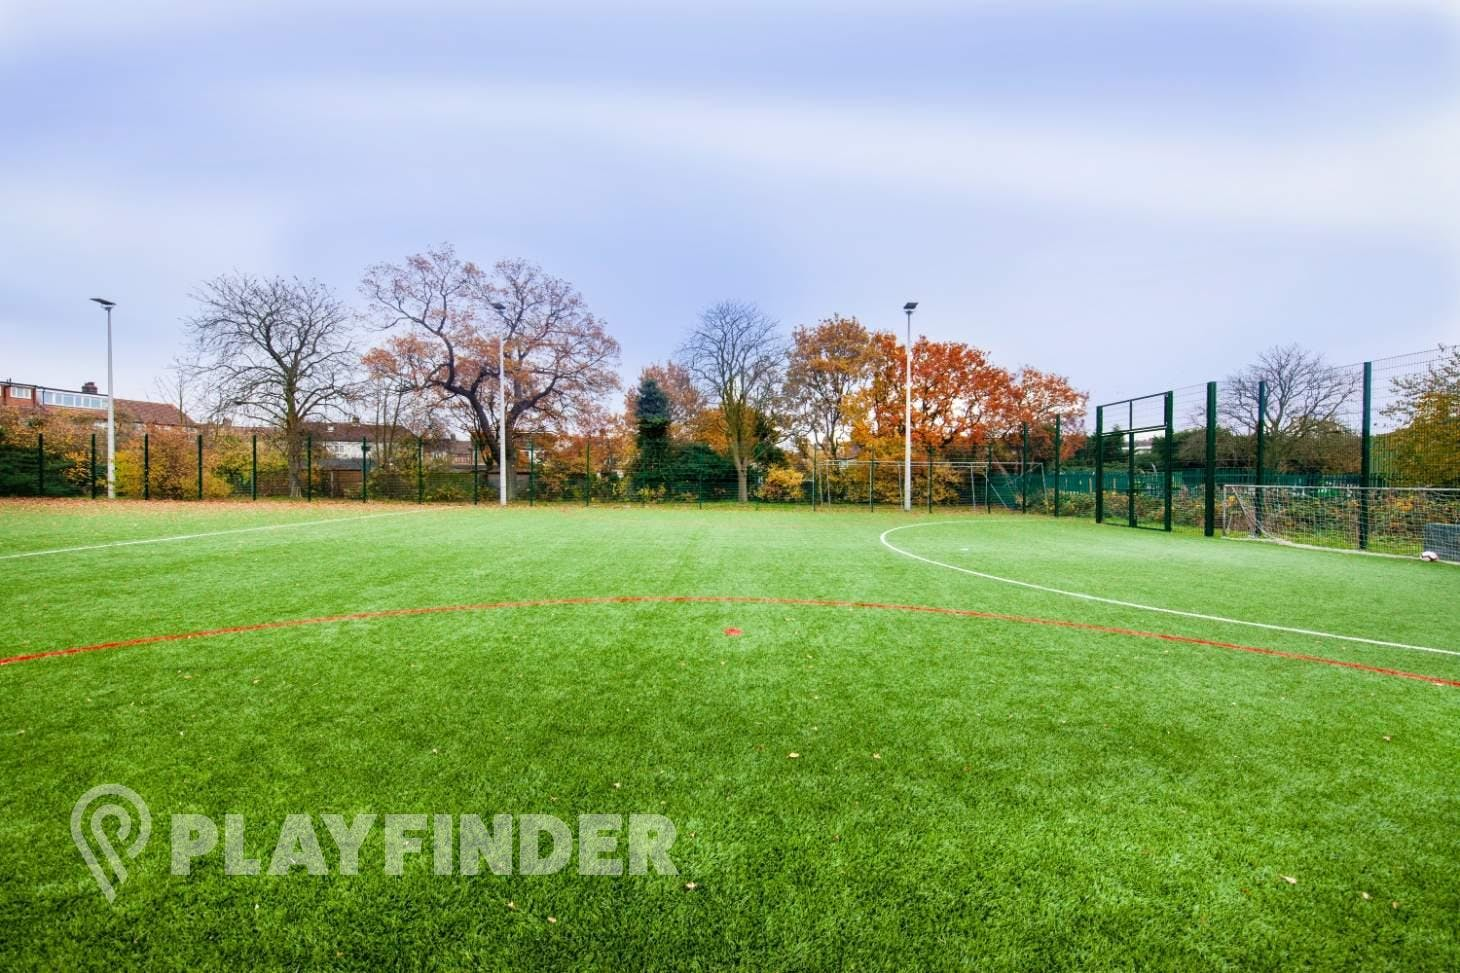 Jubilee Sports Ground, Highams Park 7 a side | 3G Astroturf football pitch